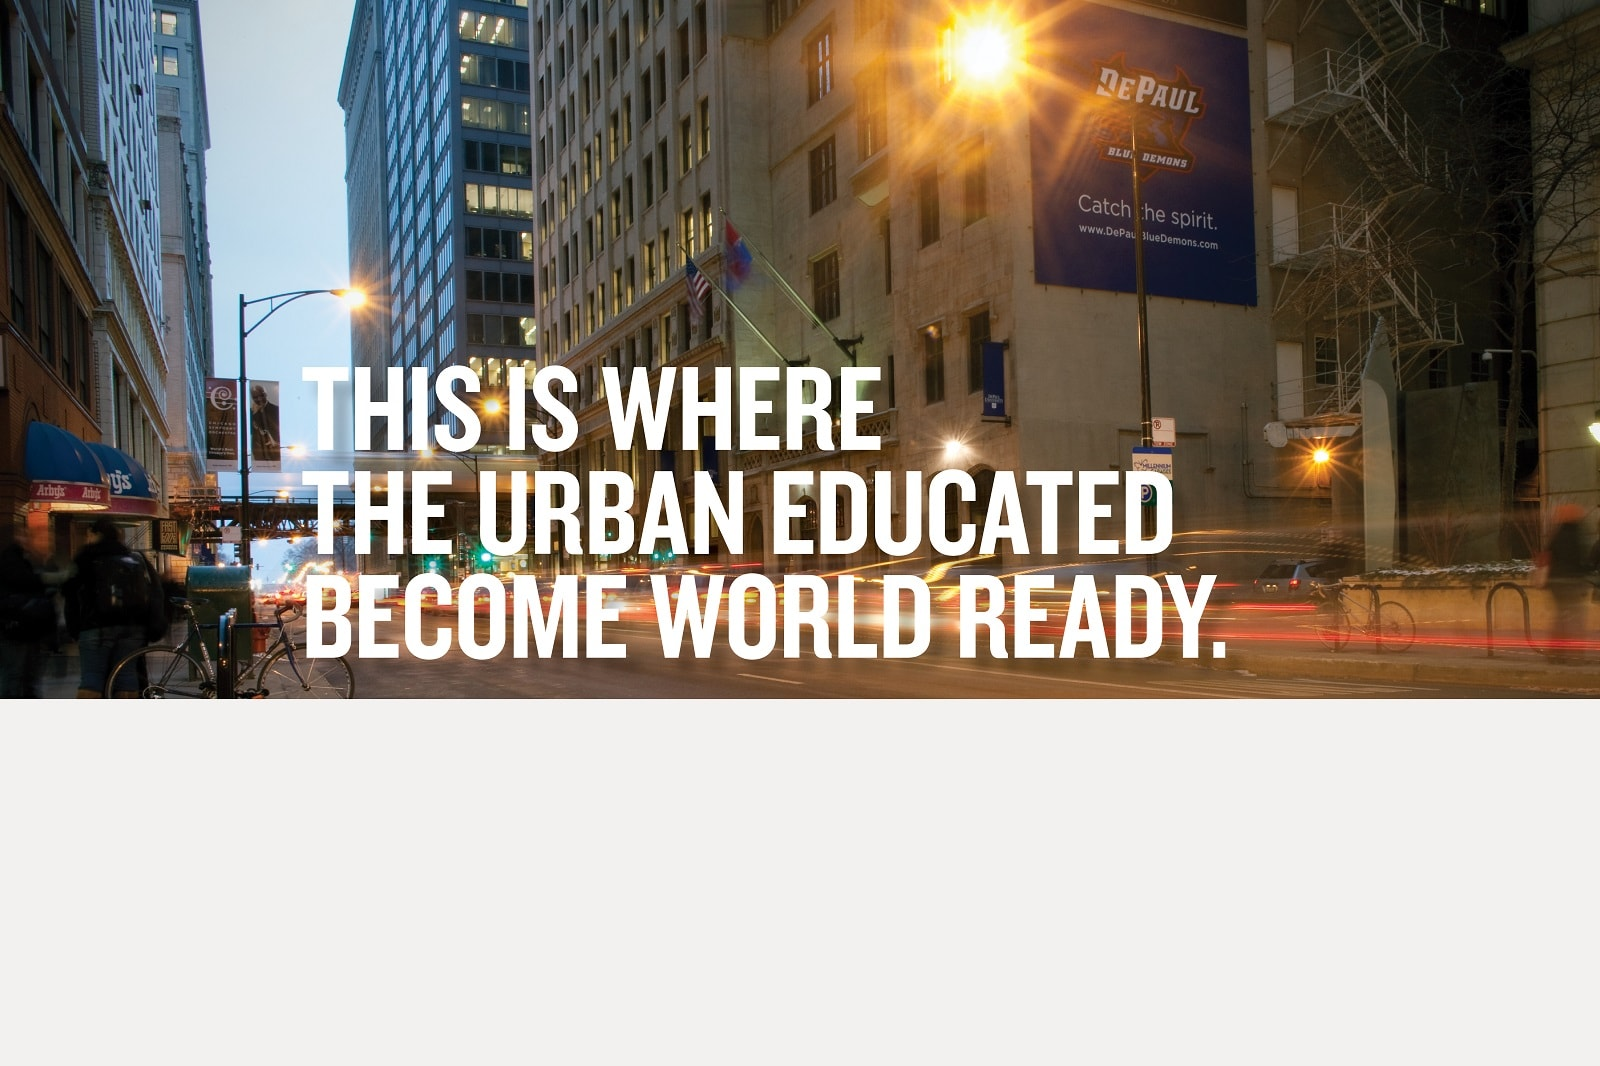 This is where the urban educated become world ready.